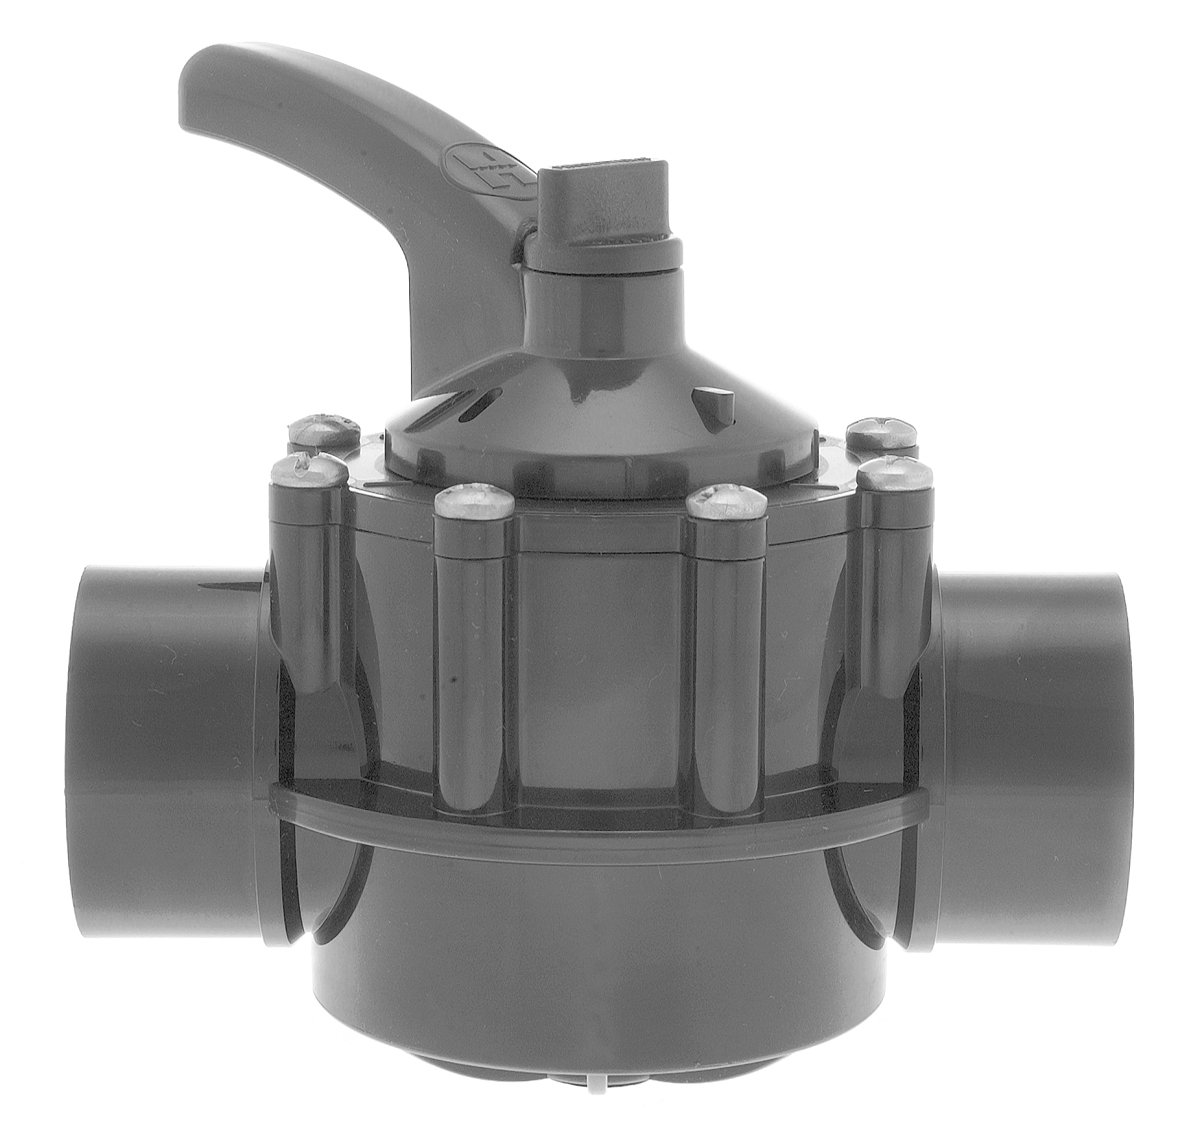 Hayward PSV2S2 CPVC 2-Way Diverter Valve by Hayward